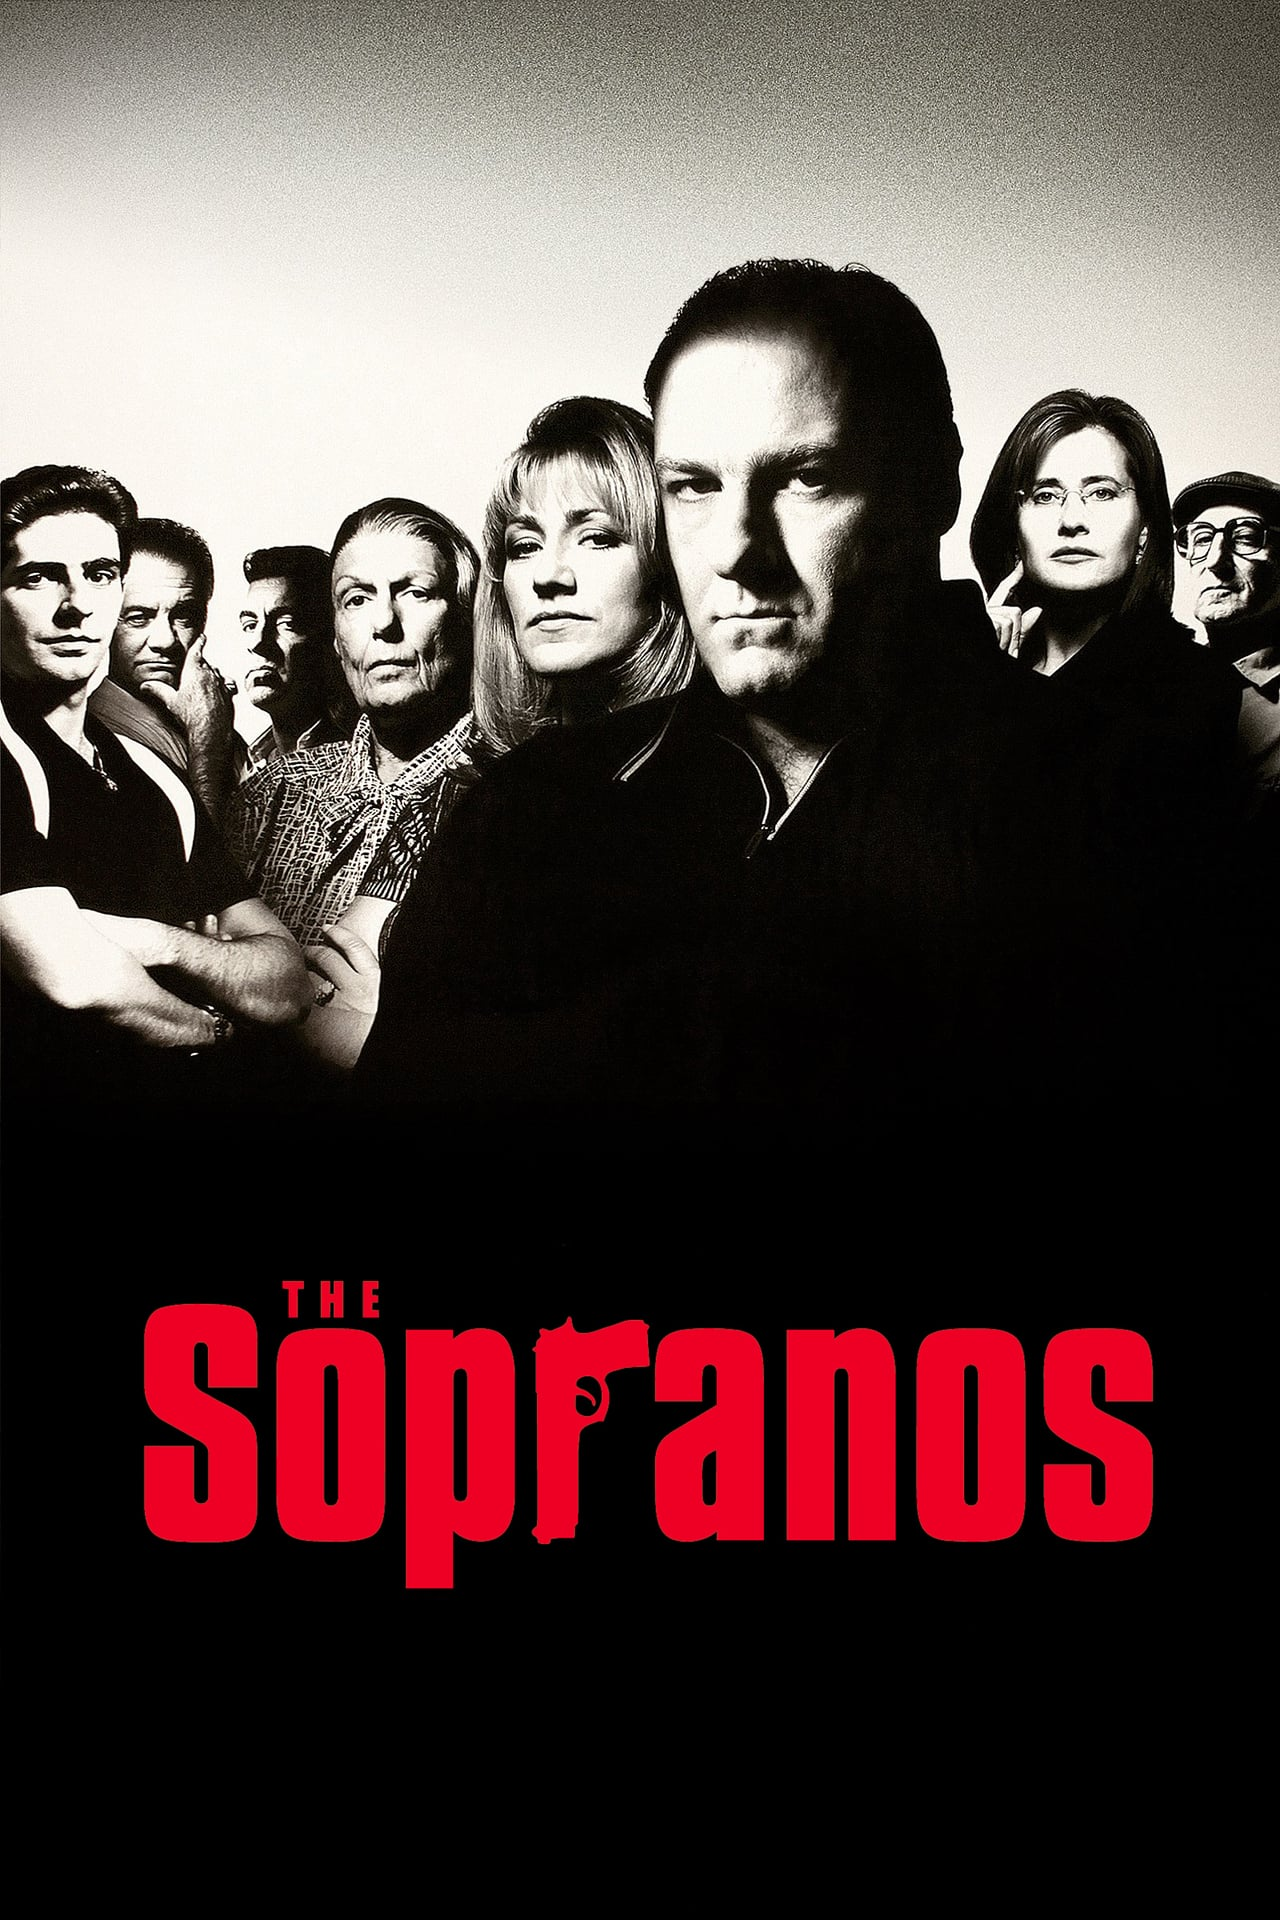 The Sopranos (season 1)